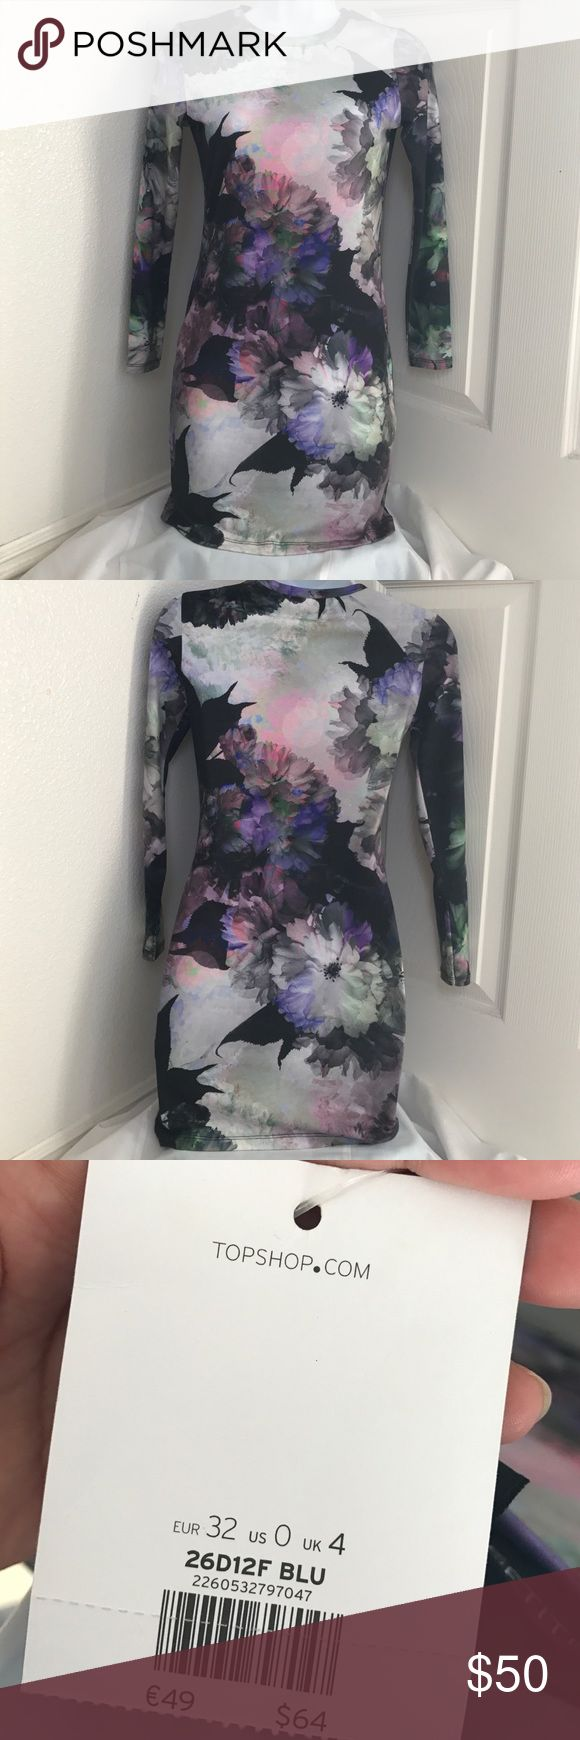 TOPSHOP Petite Size 0 midi dress New With Tags!! TOPSHOP petite midi dress. US- size 0 Topshop Dresses Midi